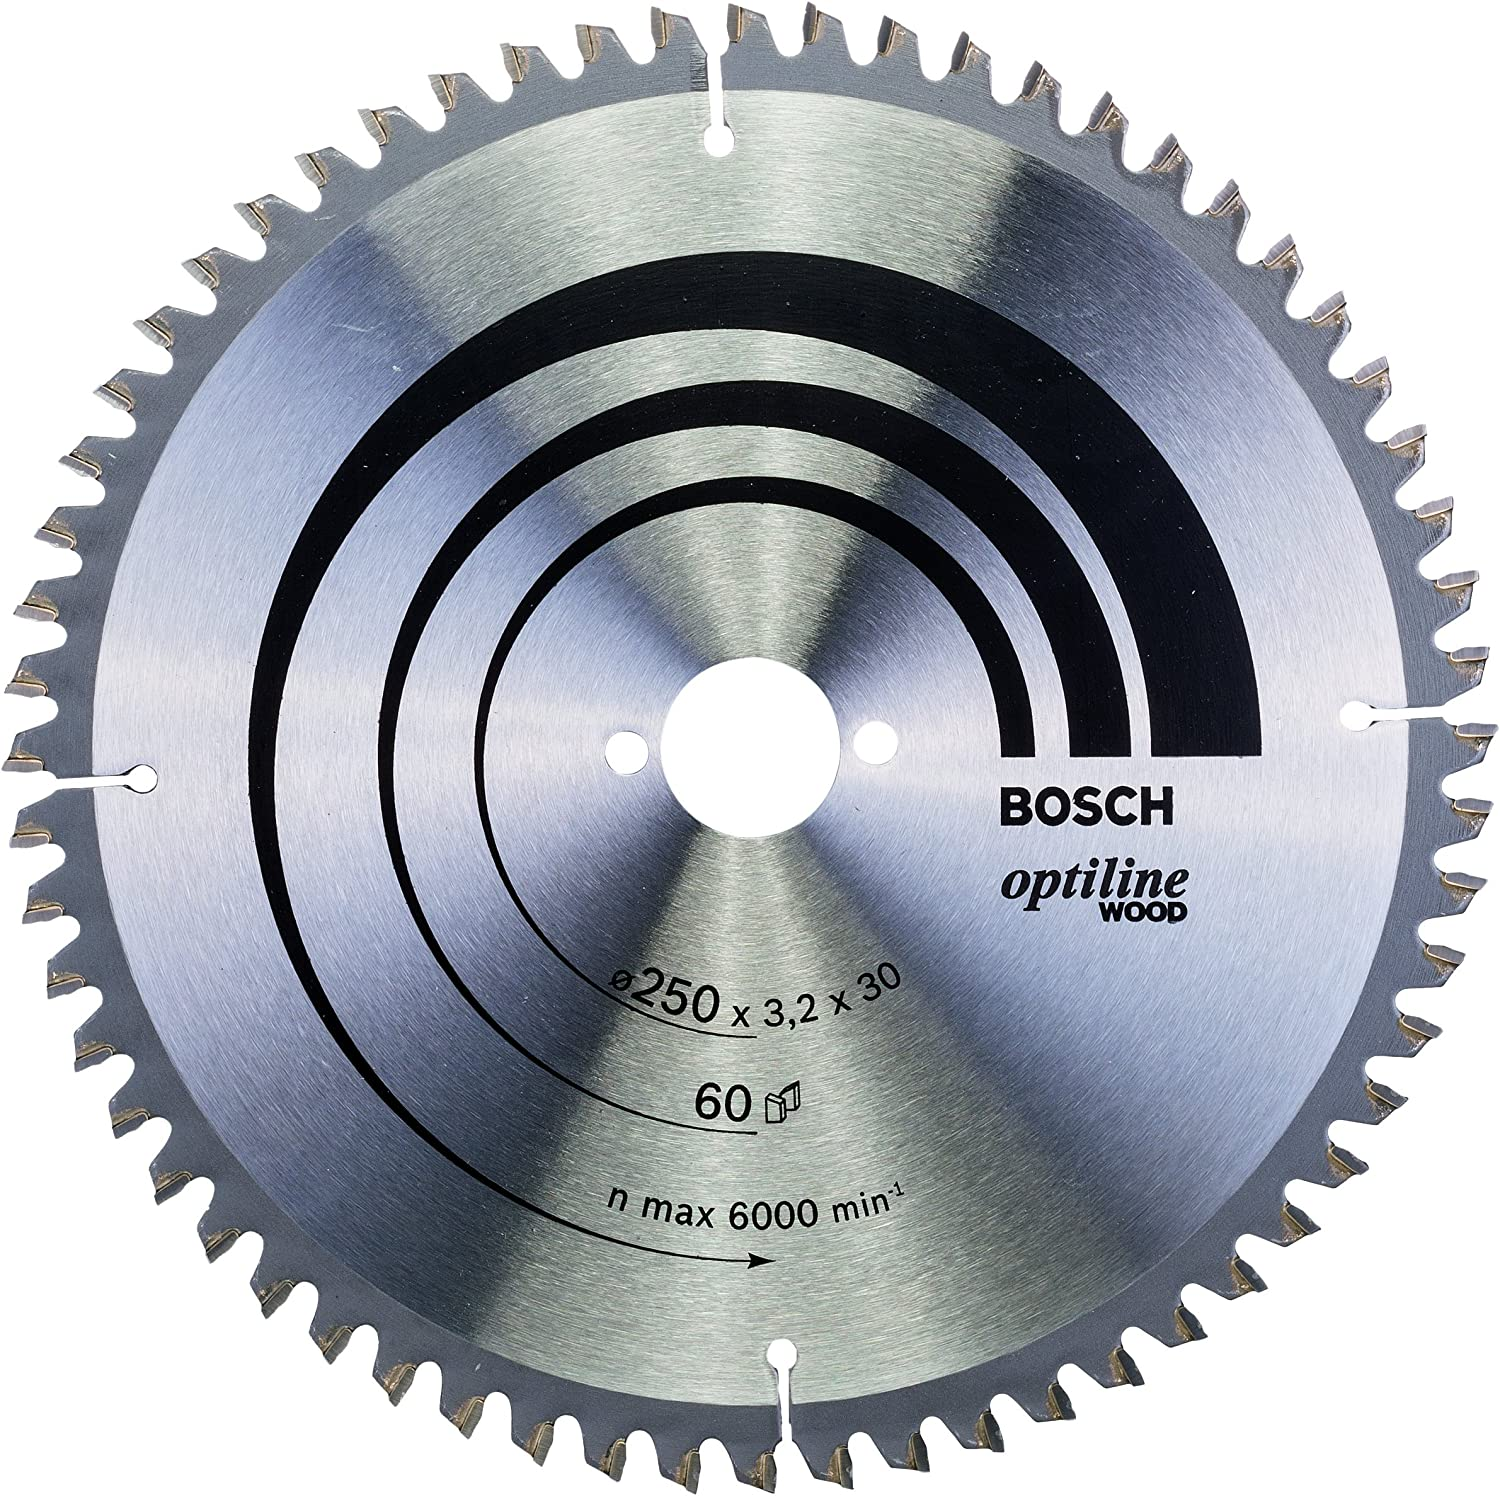 National products Bosch Topics on TV 2608640644 Circular Saw Blade